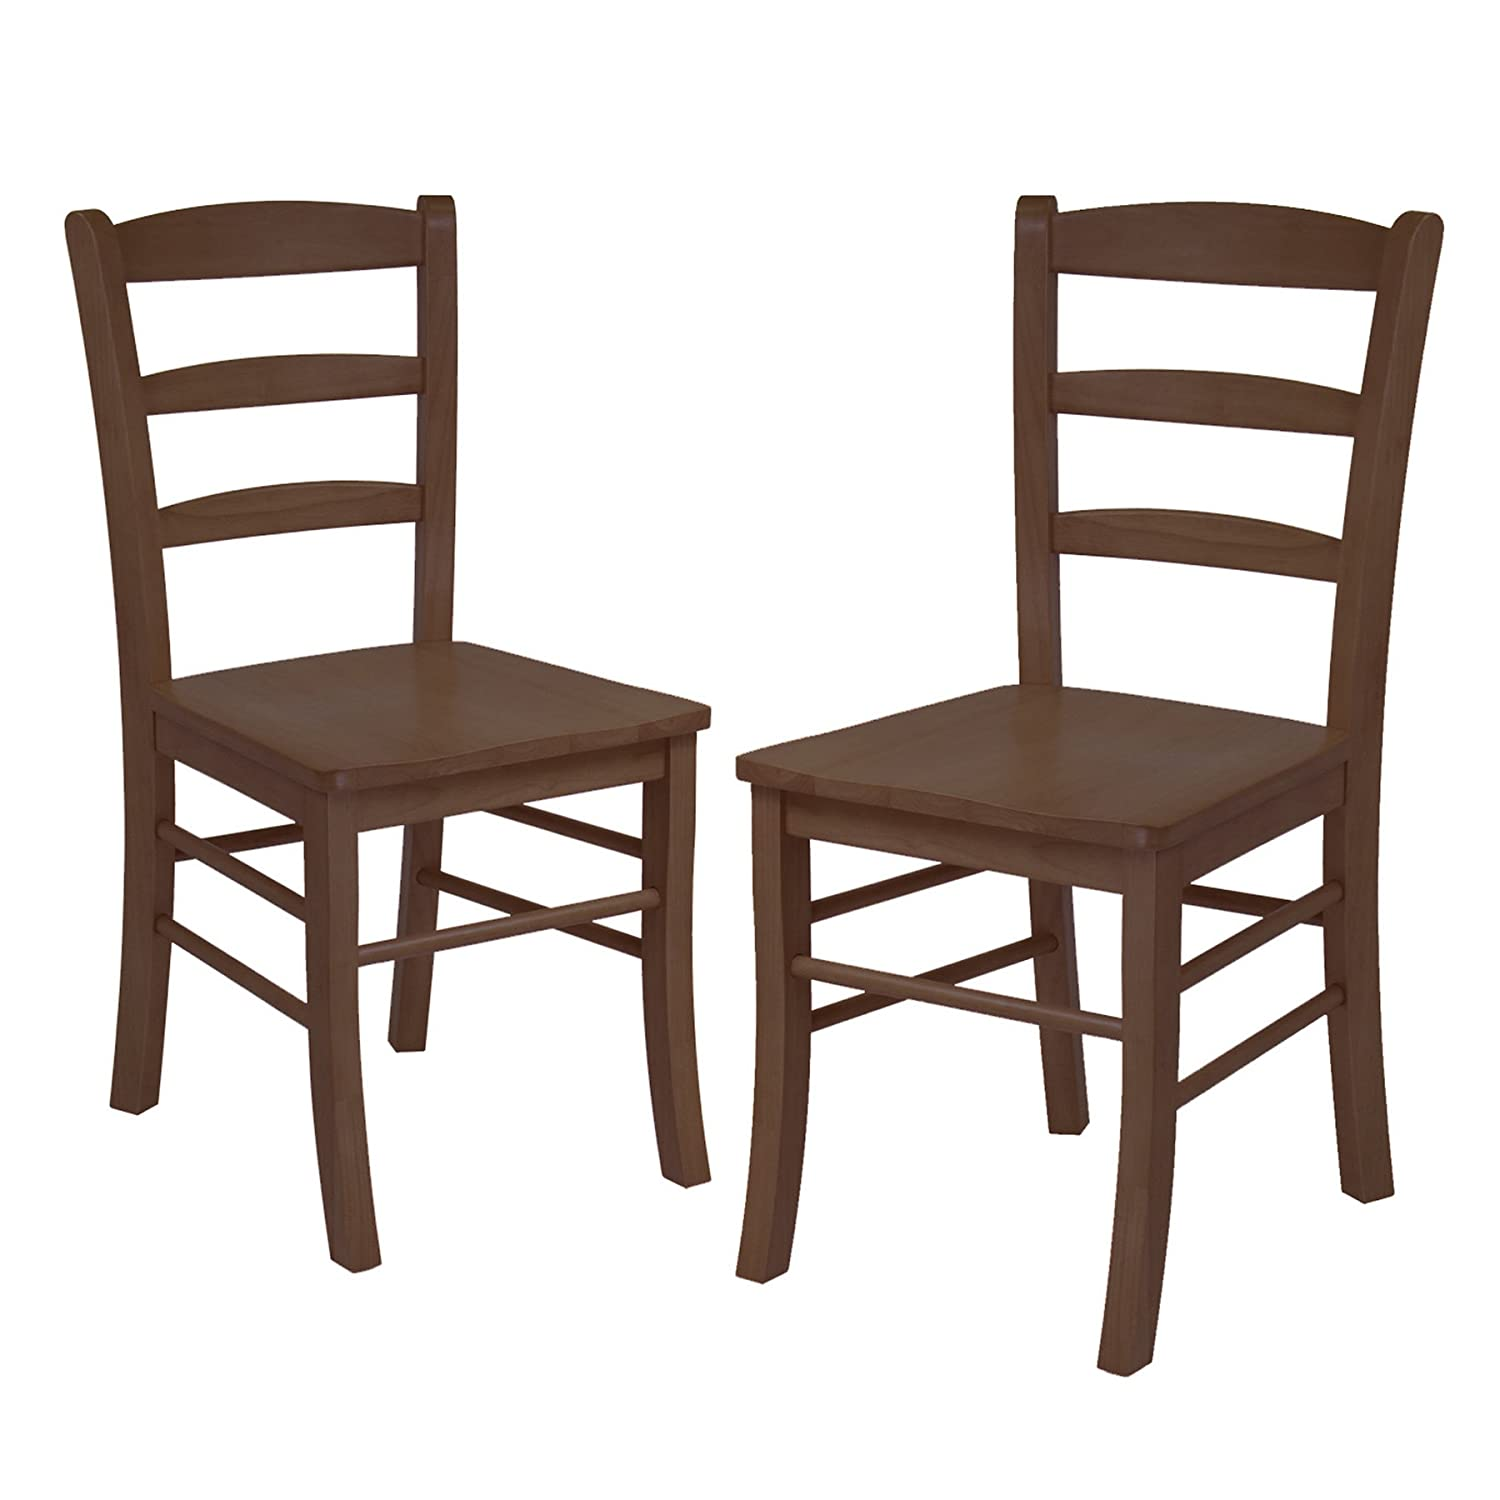 Gentil Amazon.com: Winsome Wood Ladder Back Chair, RTA, Antique Walnut, Set Of 2:  Kitchen U0026 Dining